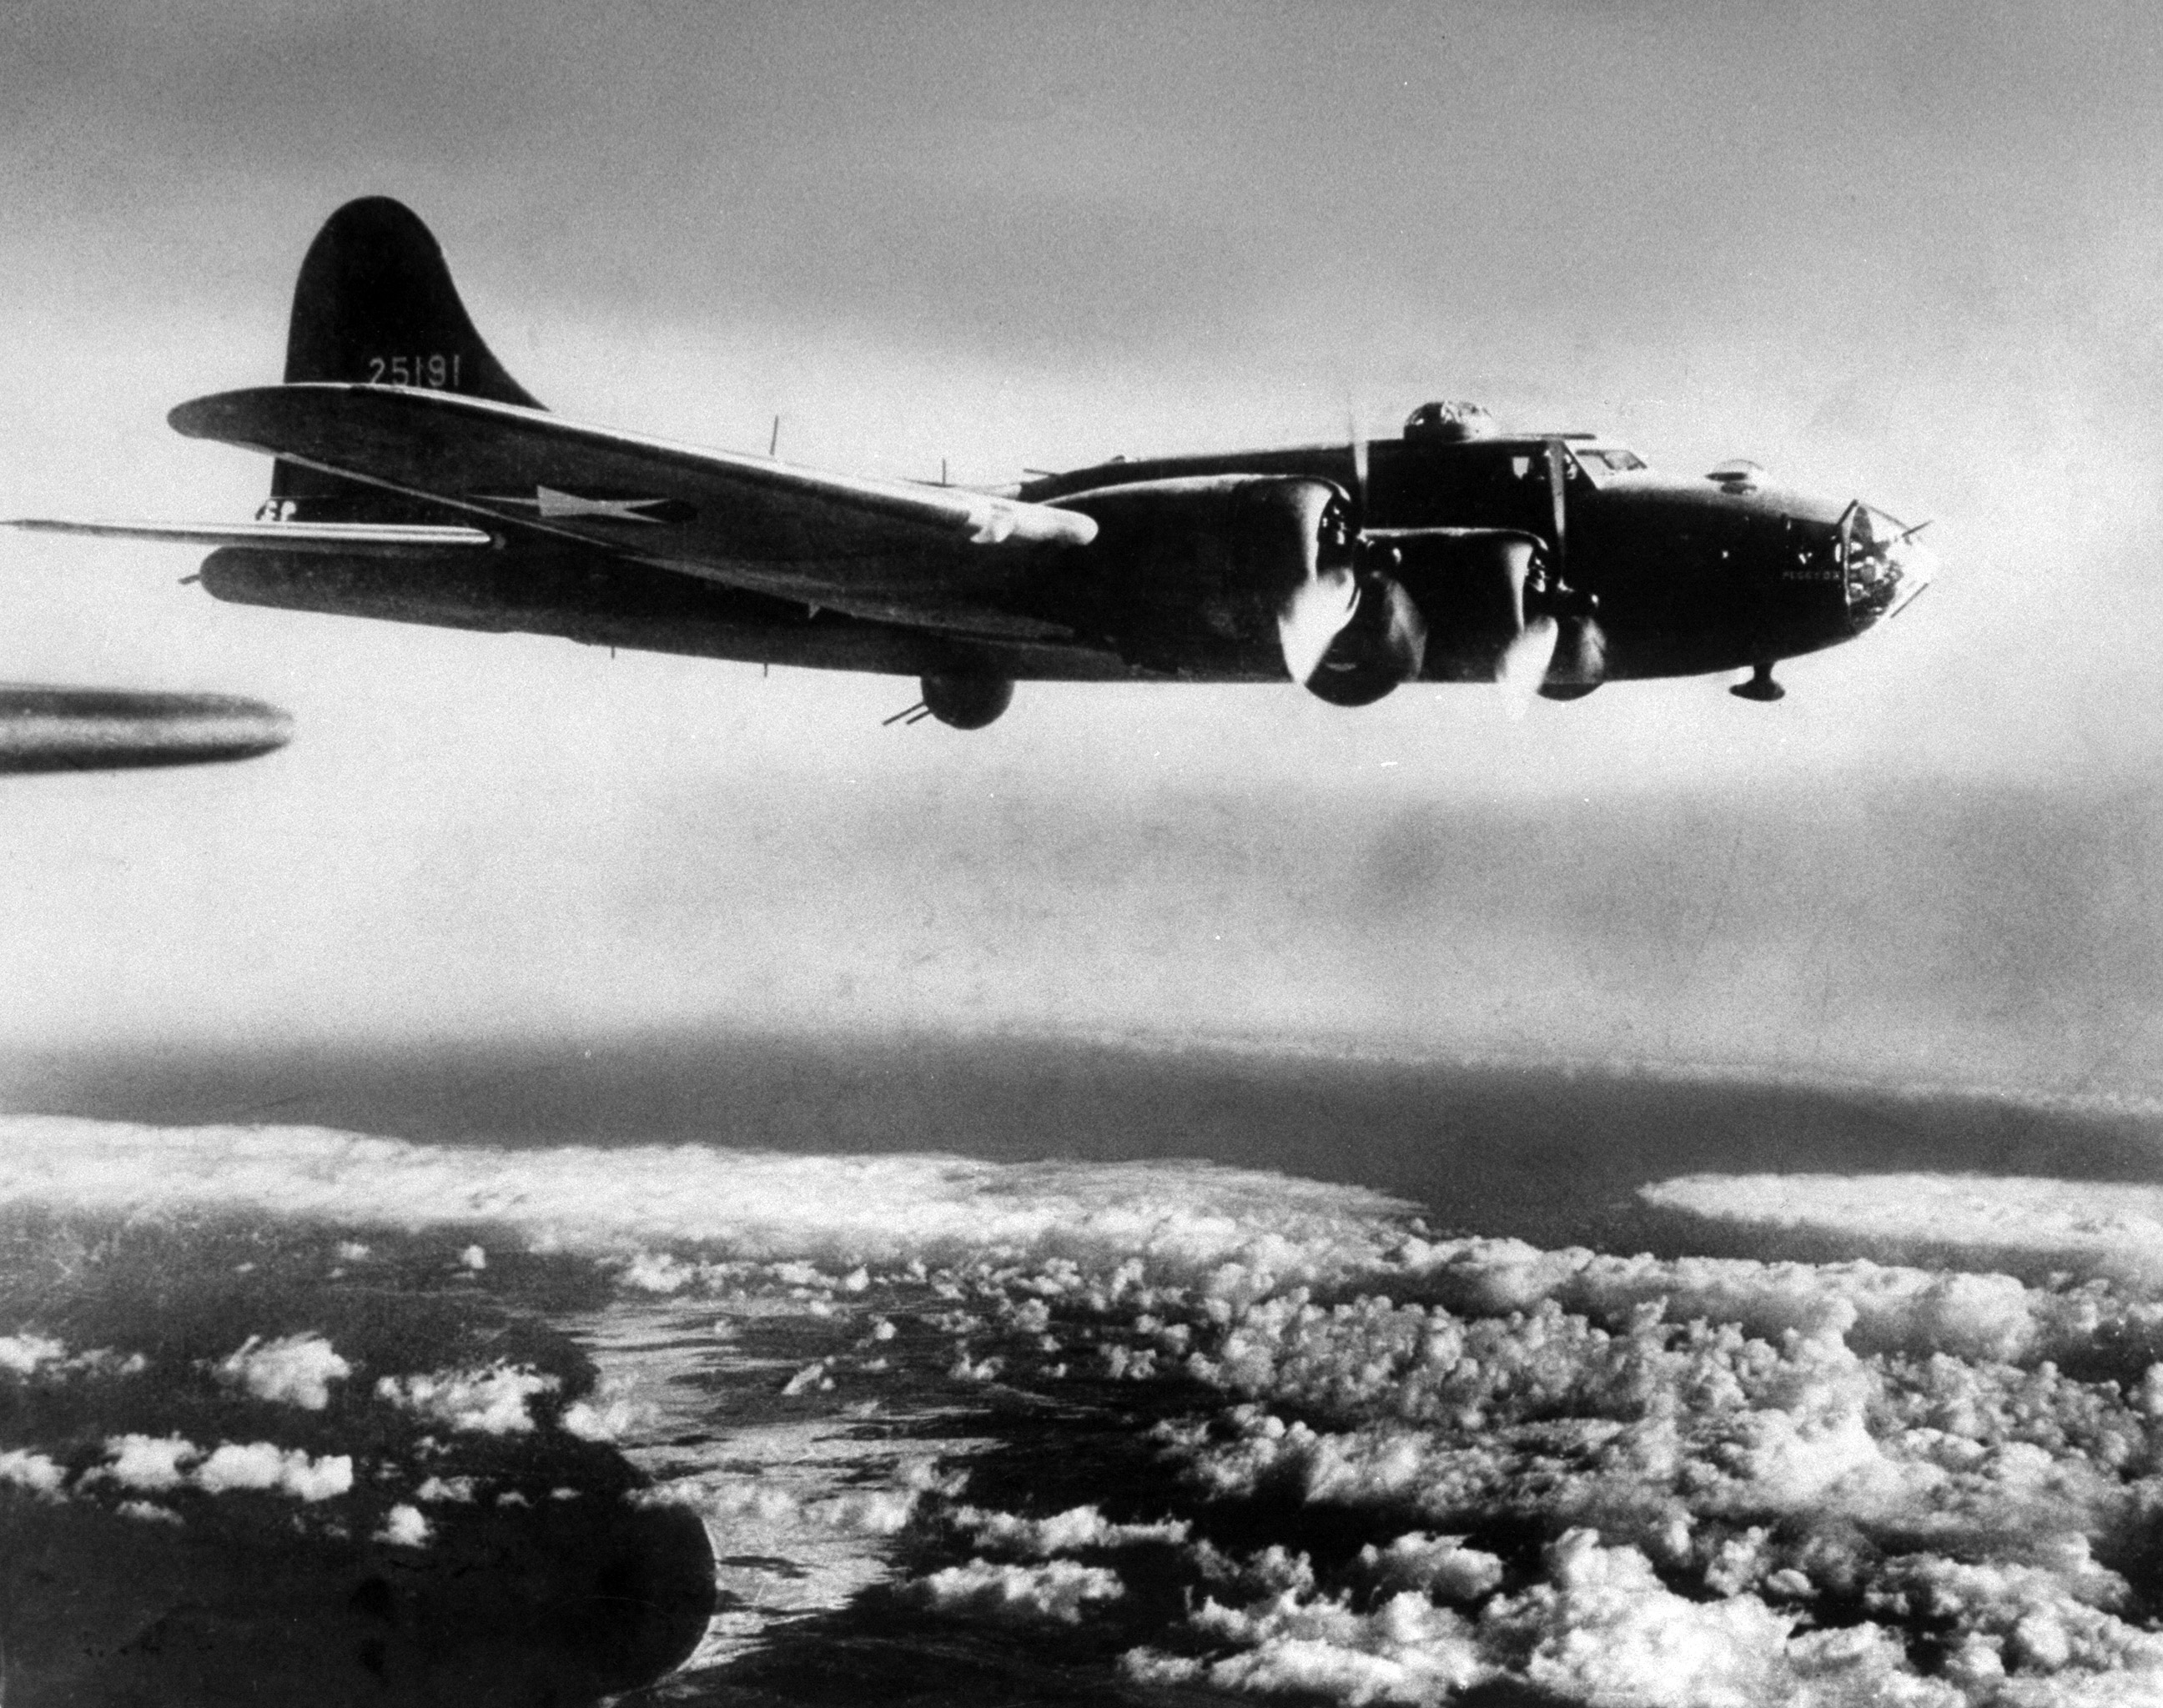 <b>Caption from LIFE.</b> Flying Fortress is photographed by Margaret Bourke-White as it heads east along cloud-banked Mediterranean coast to bomb Axis airport near Tunis.